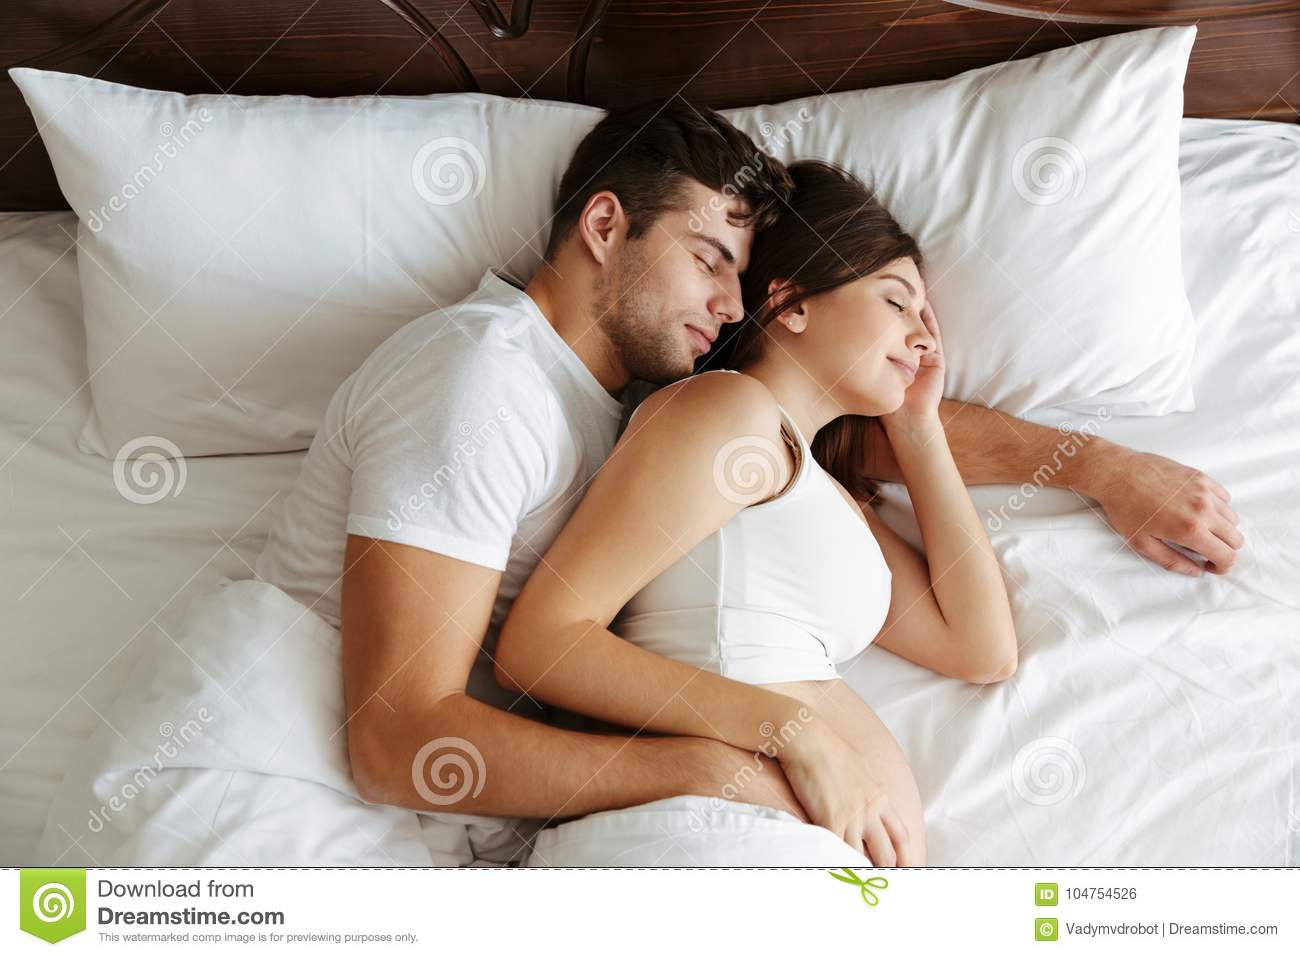 . Pregnant Woman Sleeping In Bed With Her Husband Stock Photo   Image